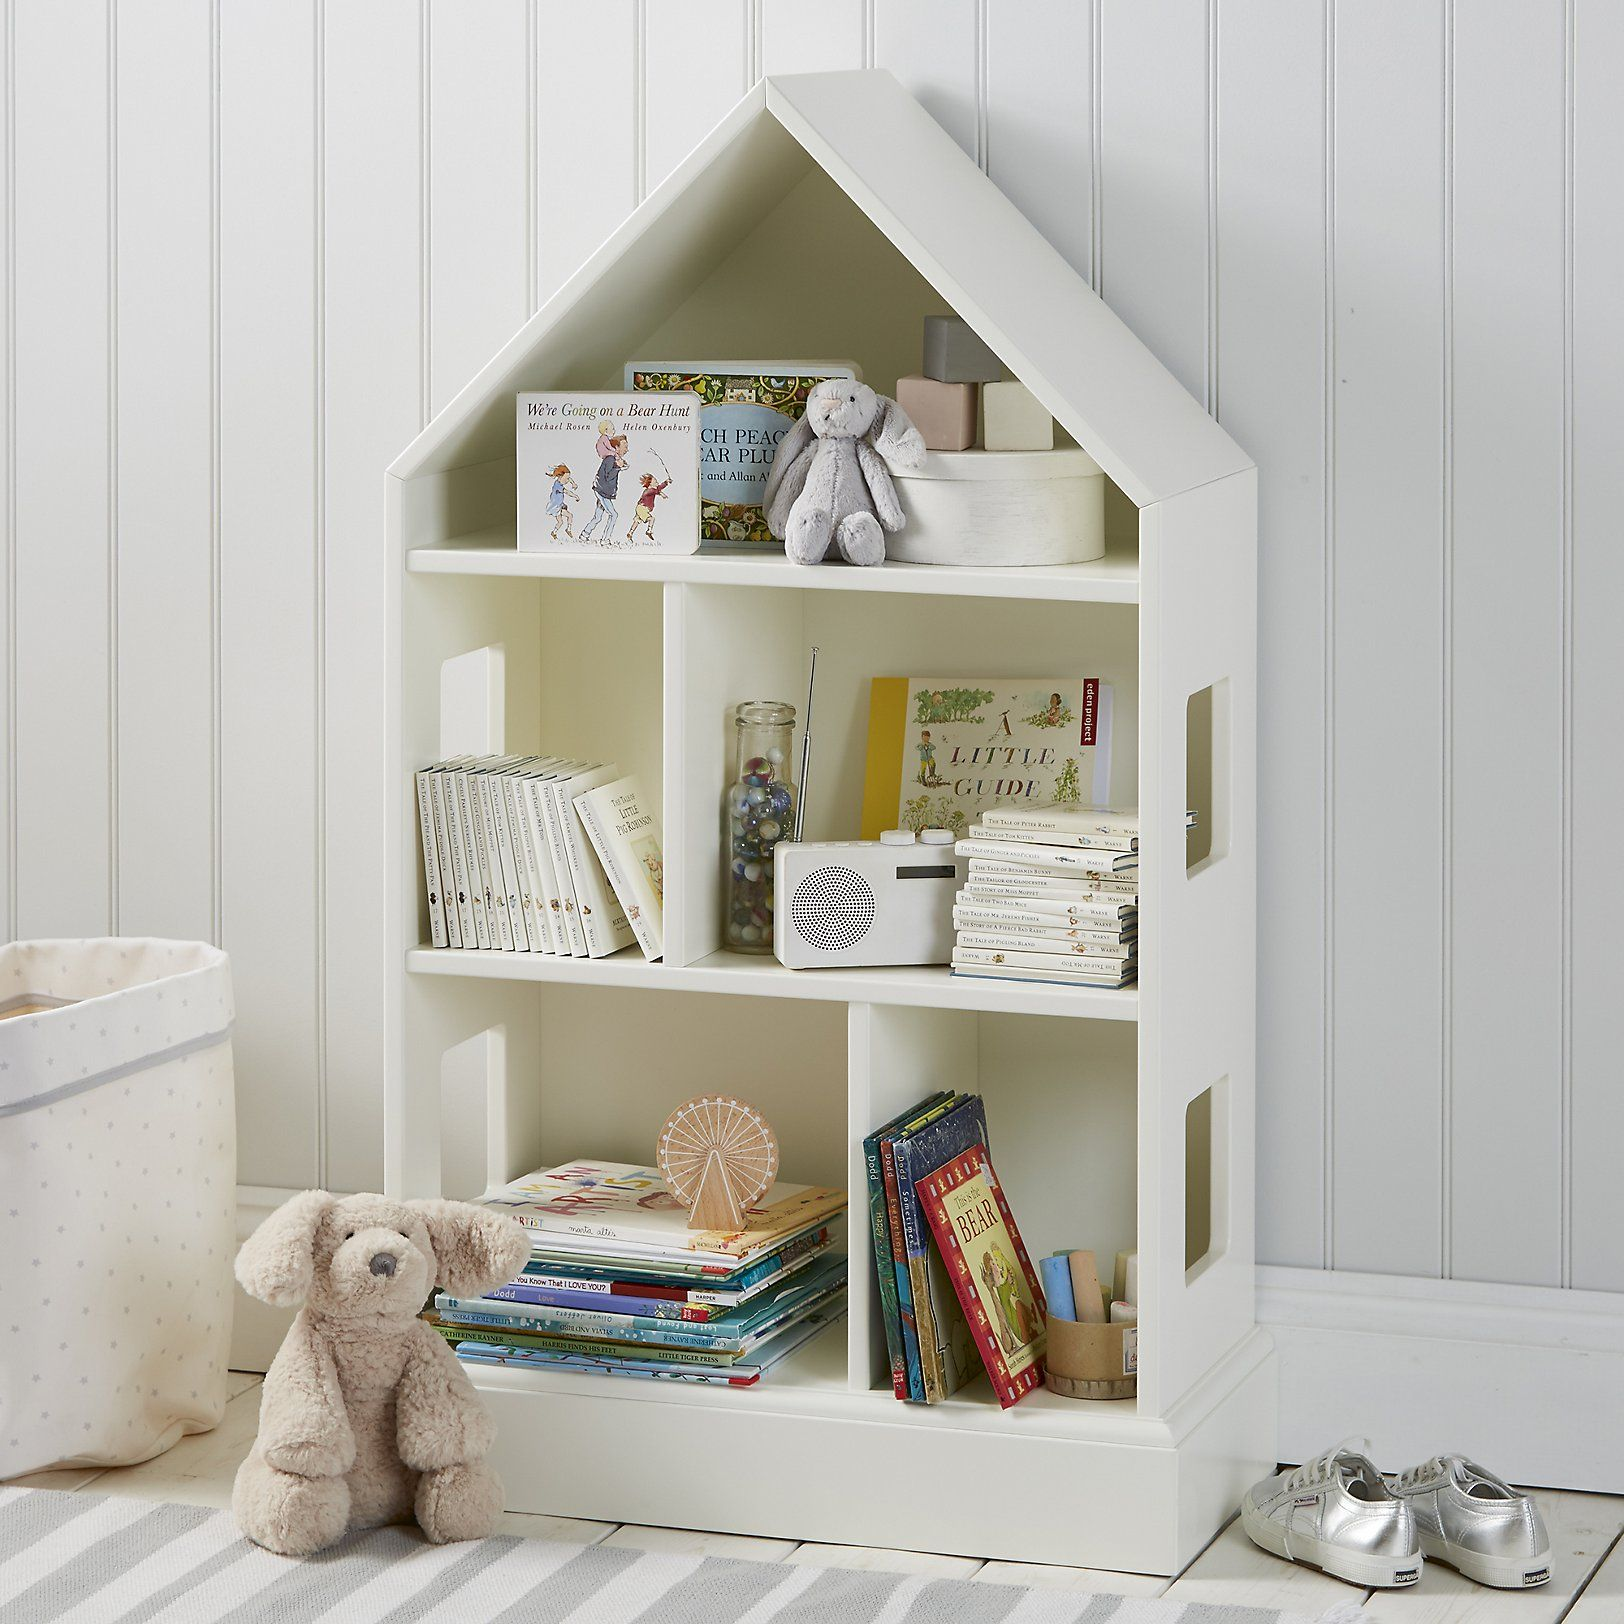 Via The White Company - Lolly Asks For Your Help In Sourcing Stylish Storage Solutions For Kitchens And Childrens' Bedrooms That Are Practical And Budget Friendly.